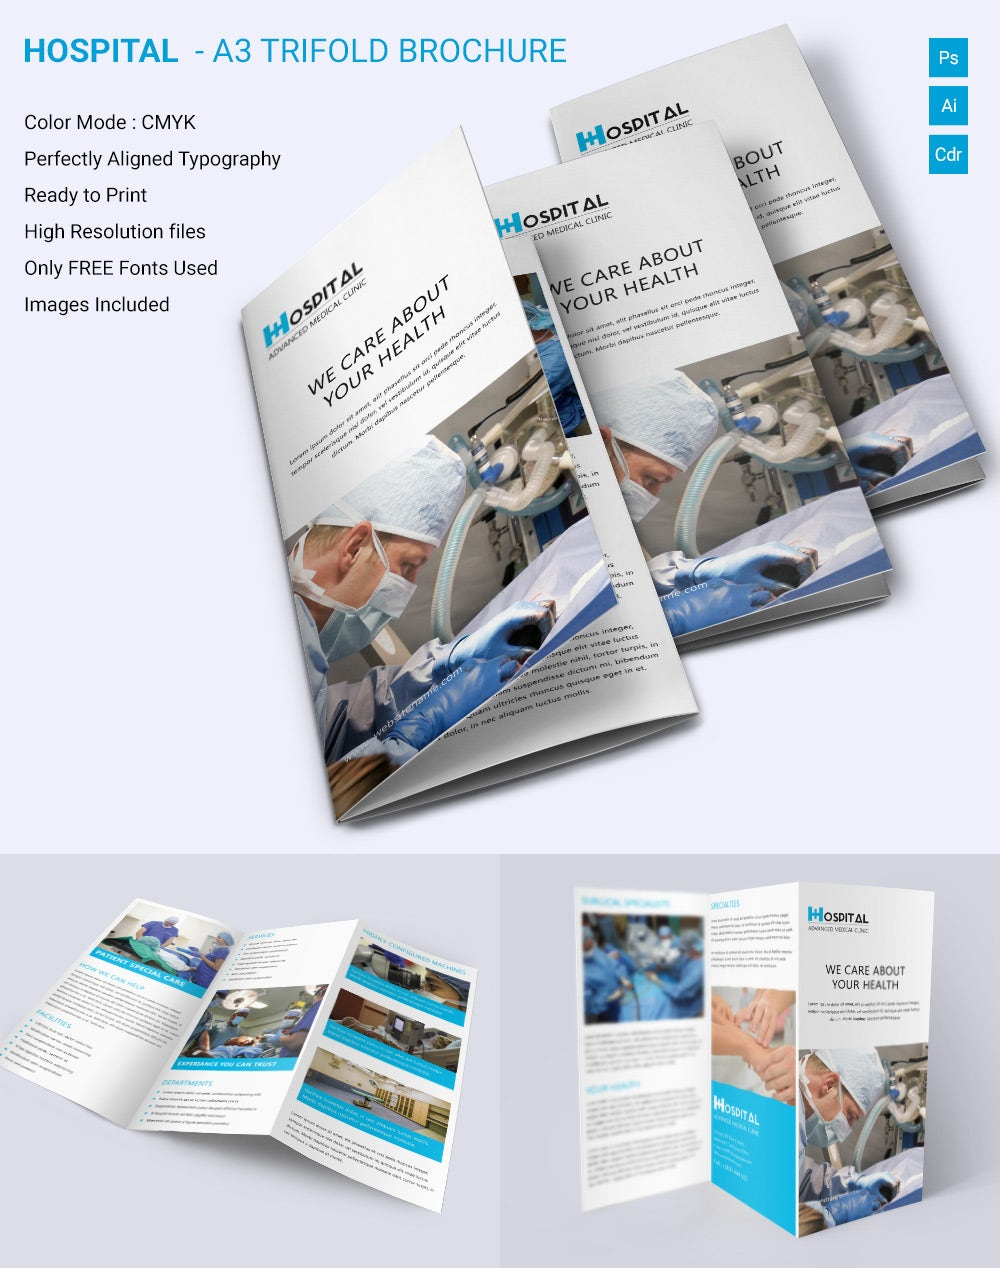 a brochure template - medical brochure template 39 free psd ai vector eps